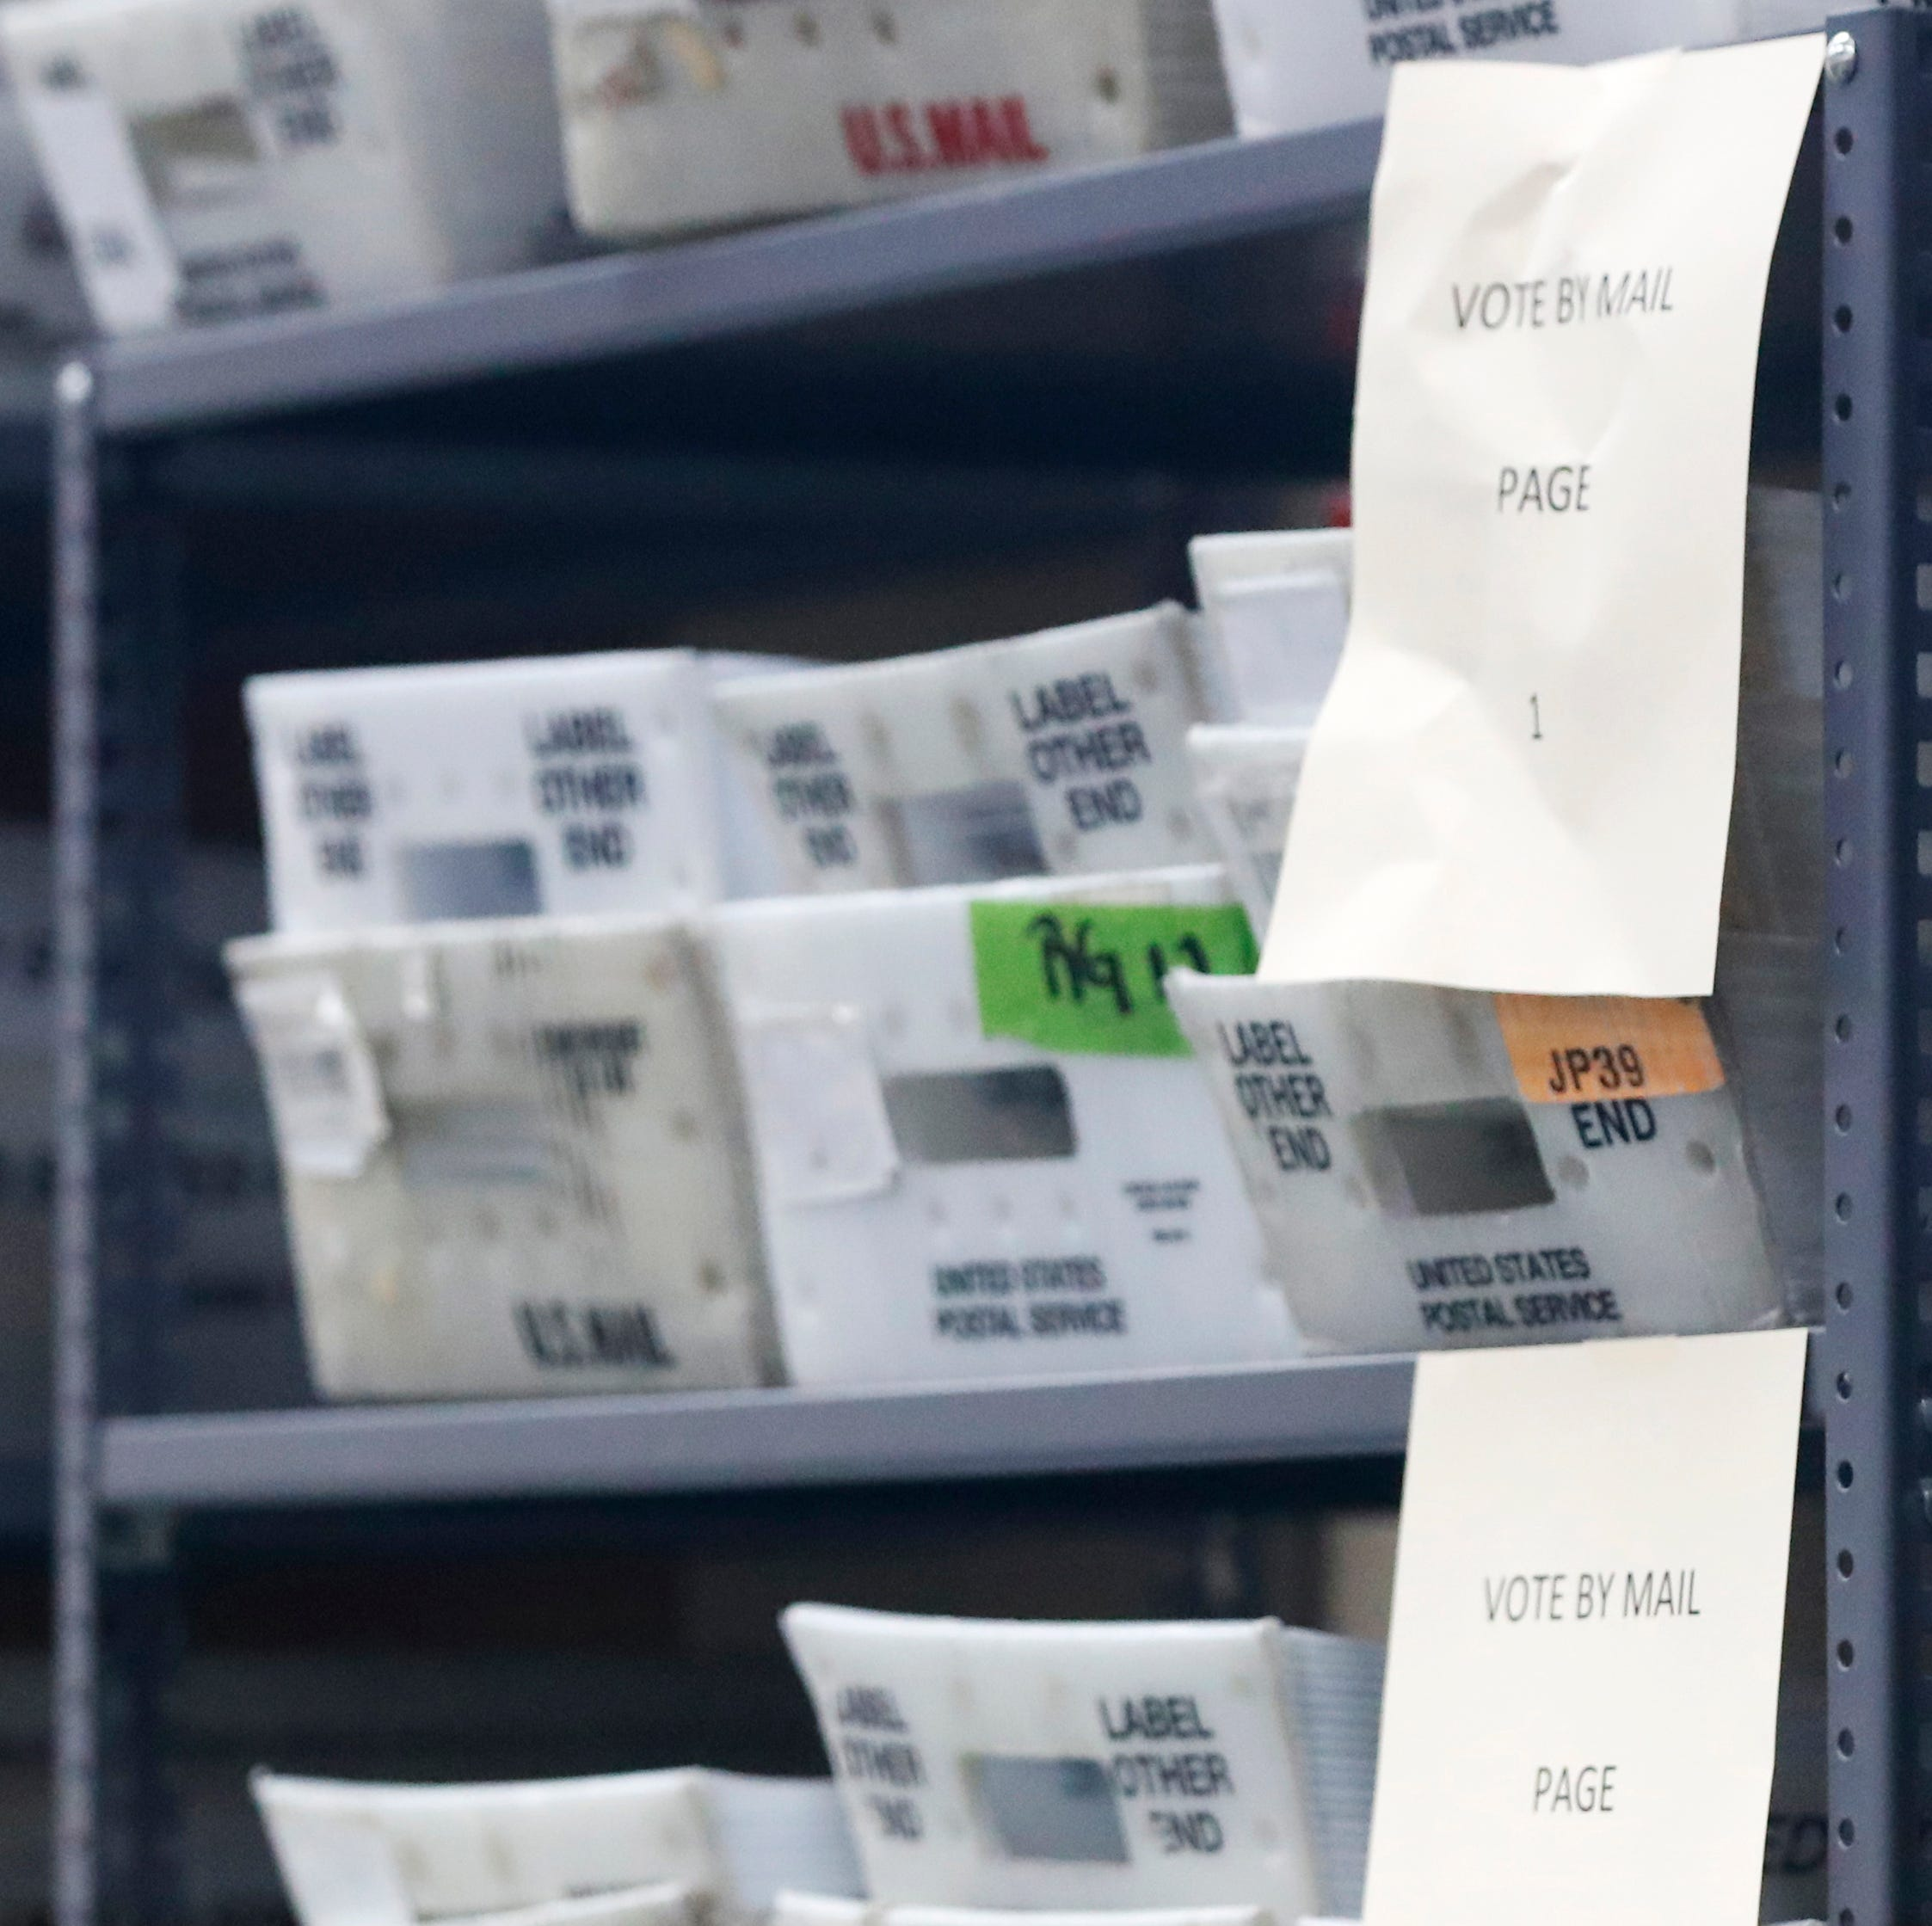 Democrats planned to use altered forms to fix mail ballots across Florida after deadline